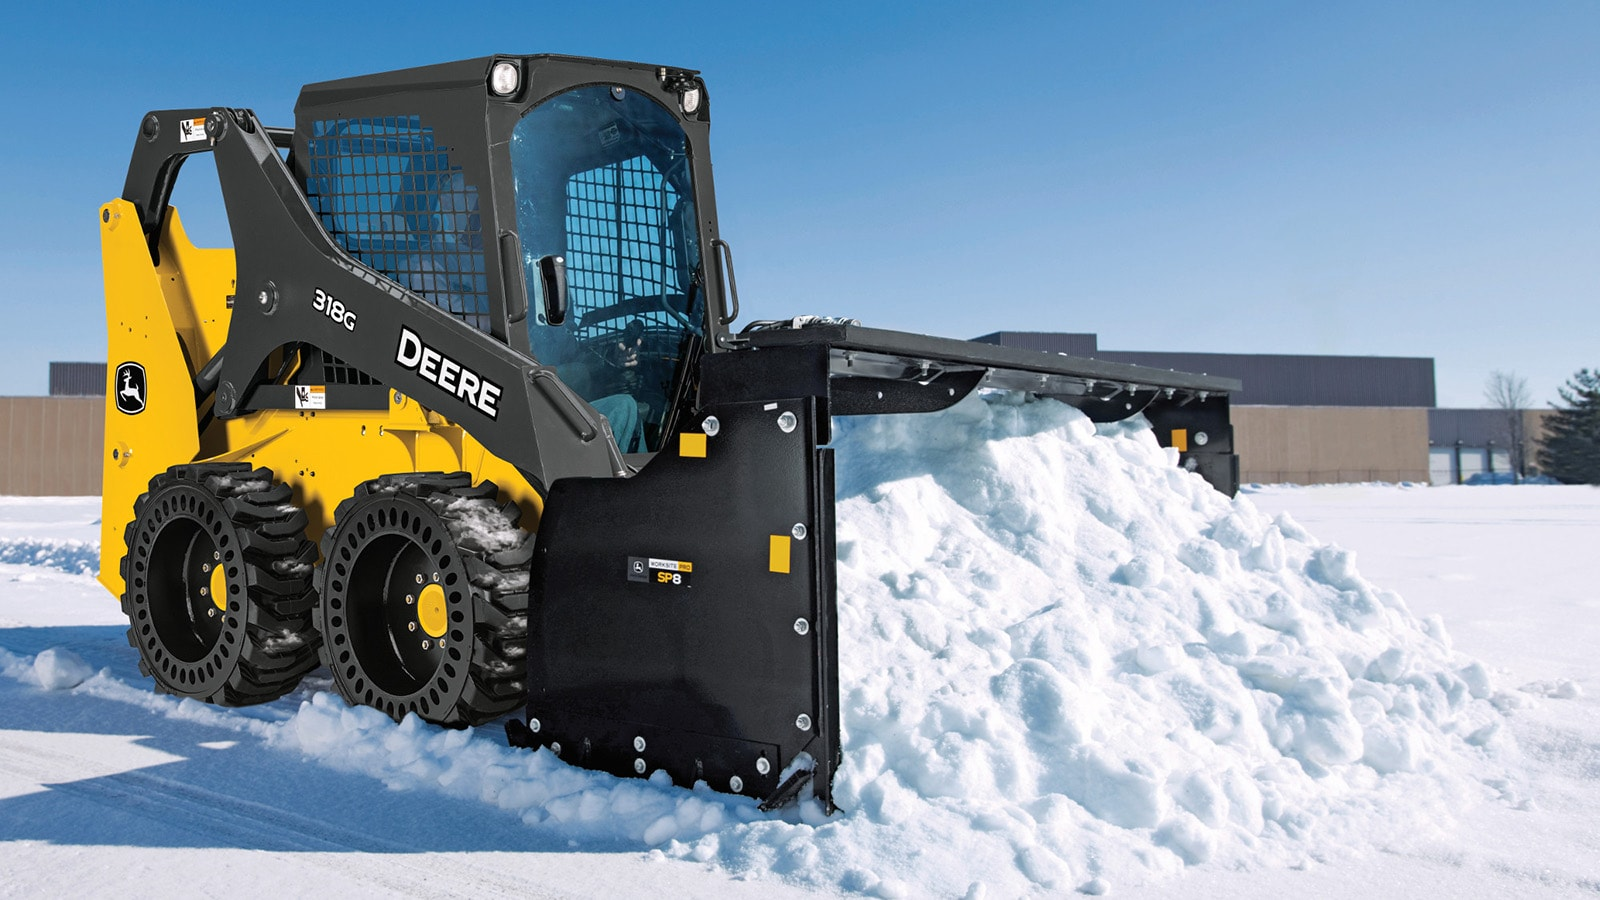 318G Skid Steer with snow pusher attachment removing snow